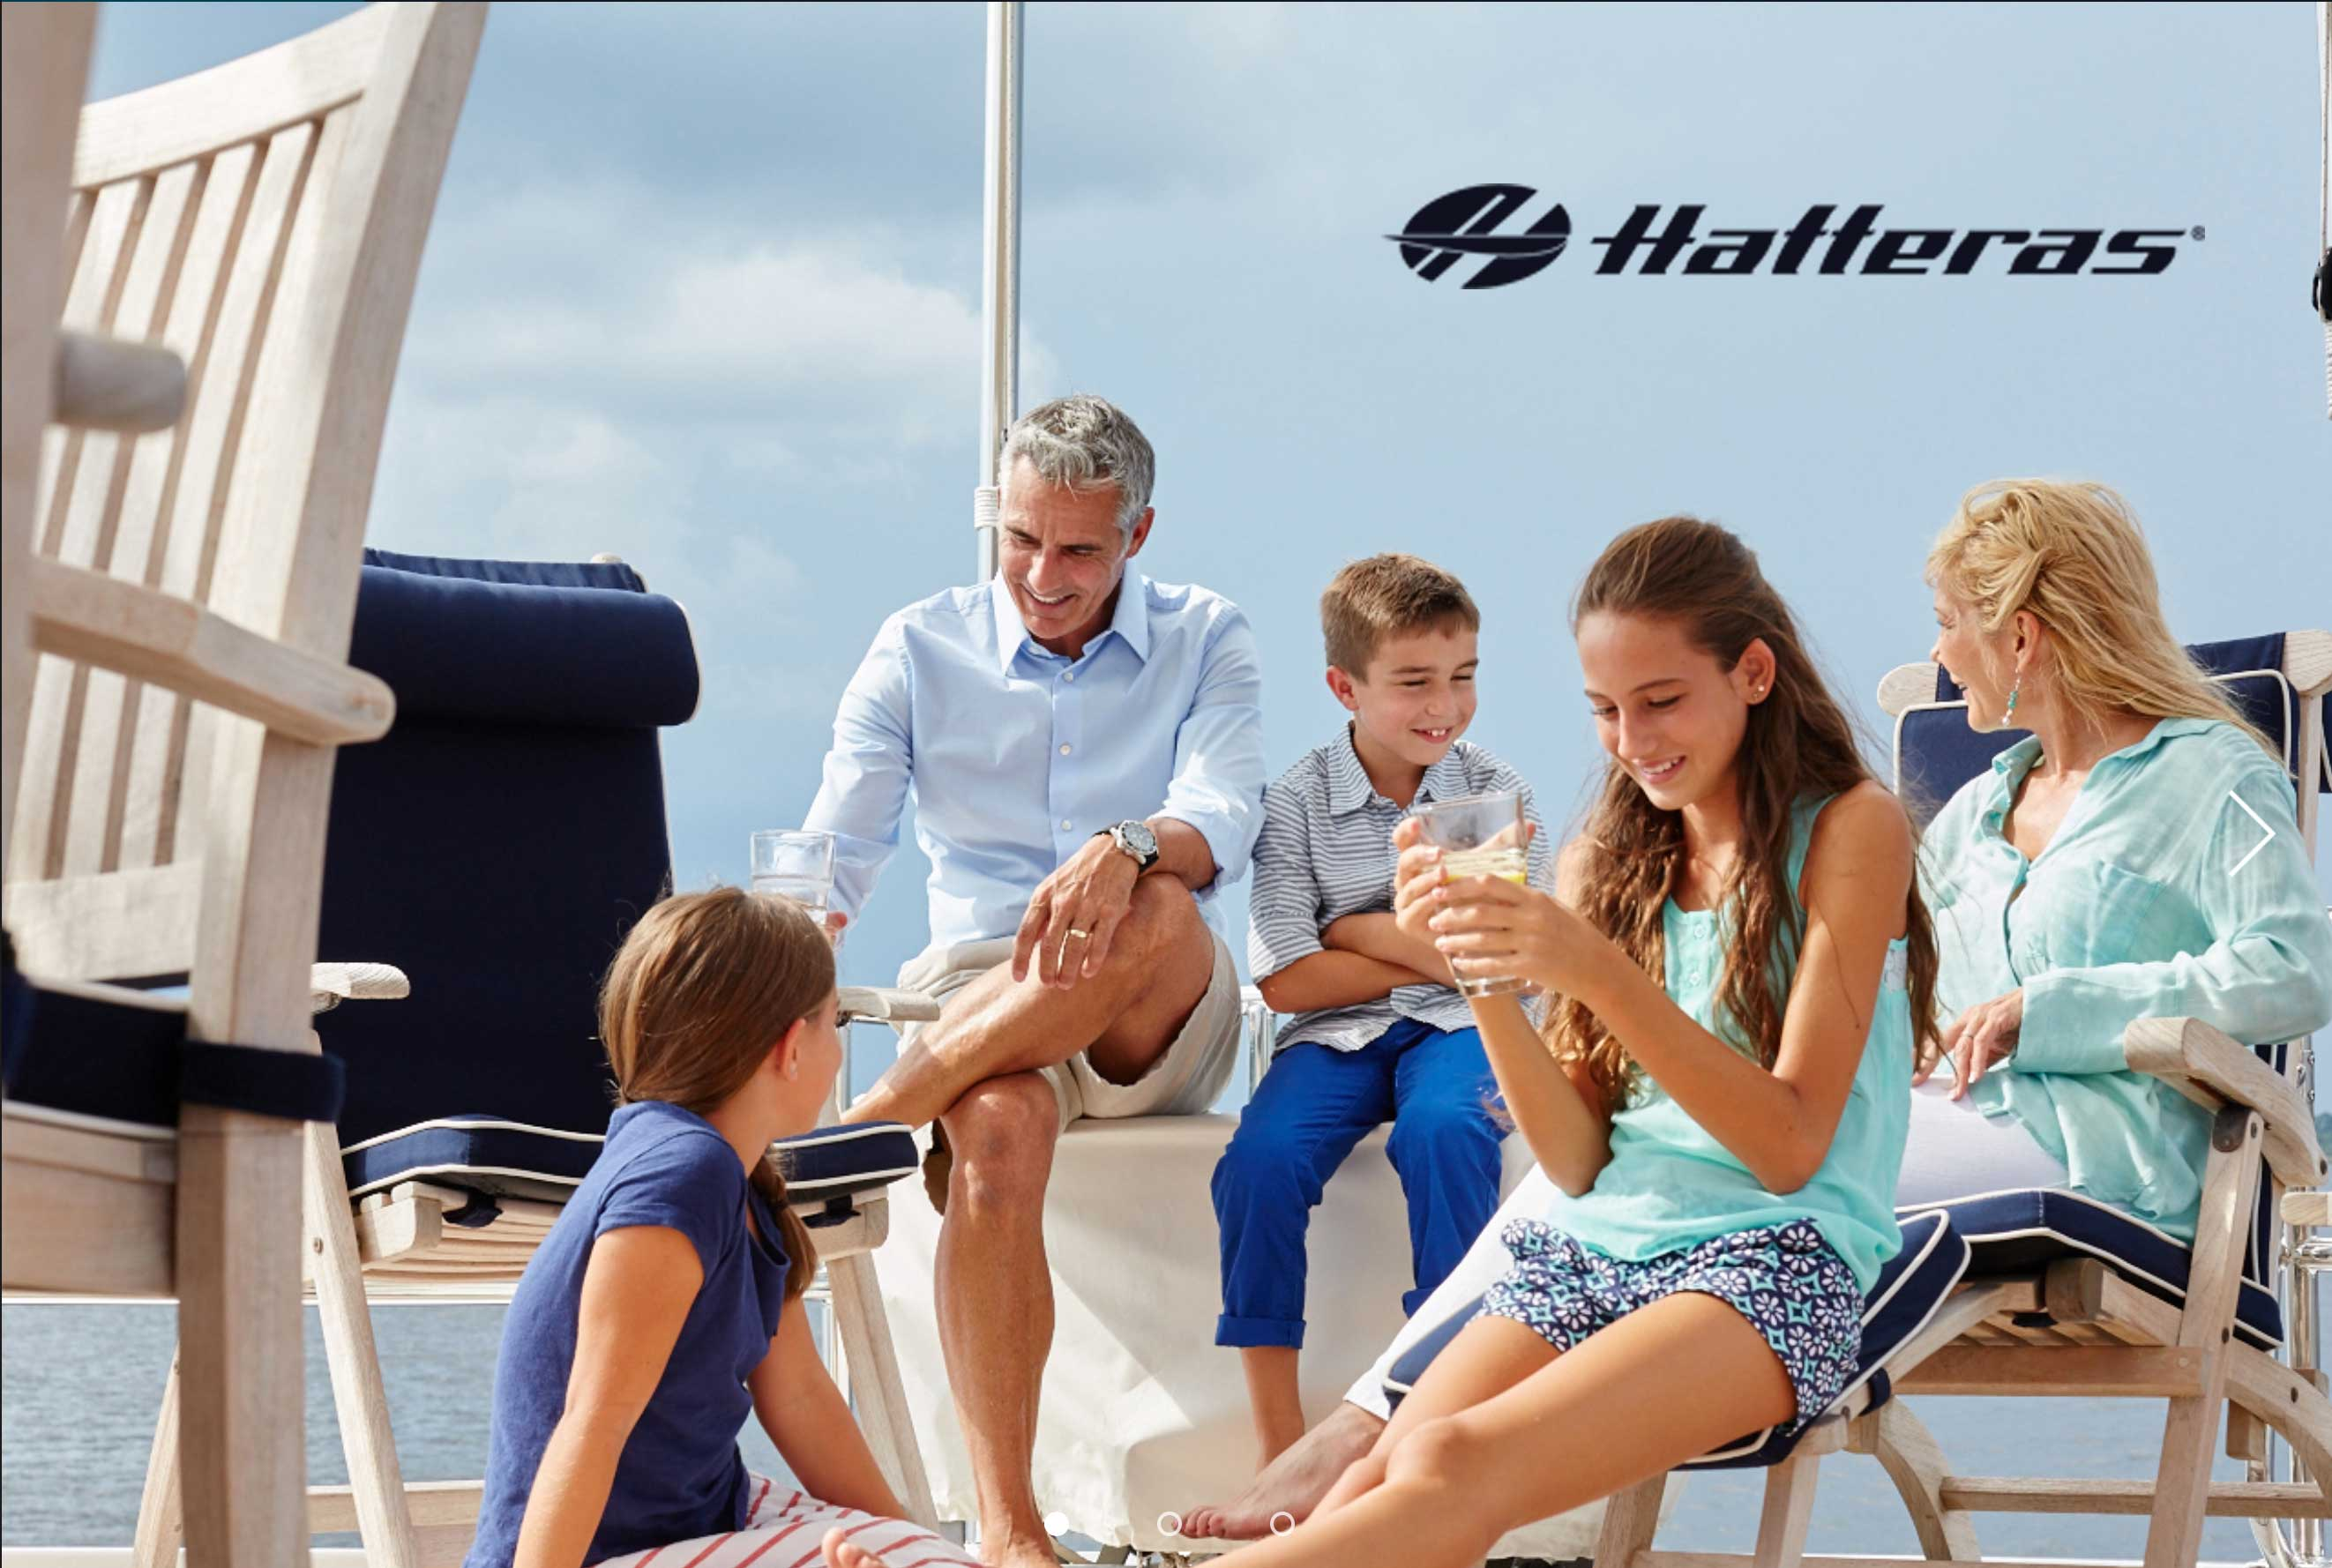 Hatteras Yachts Lifestyle